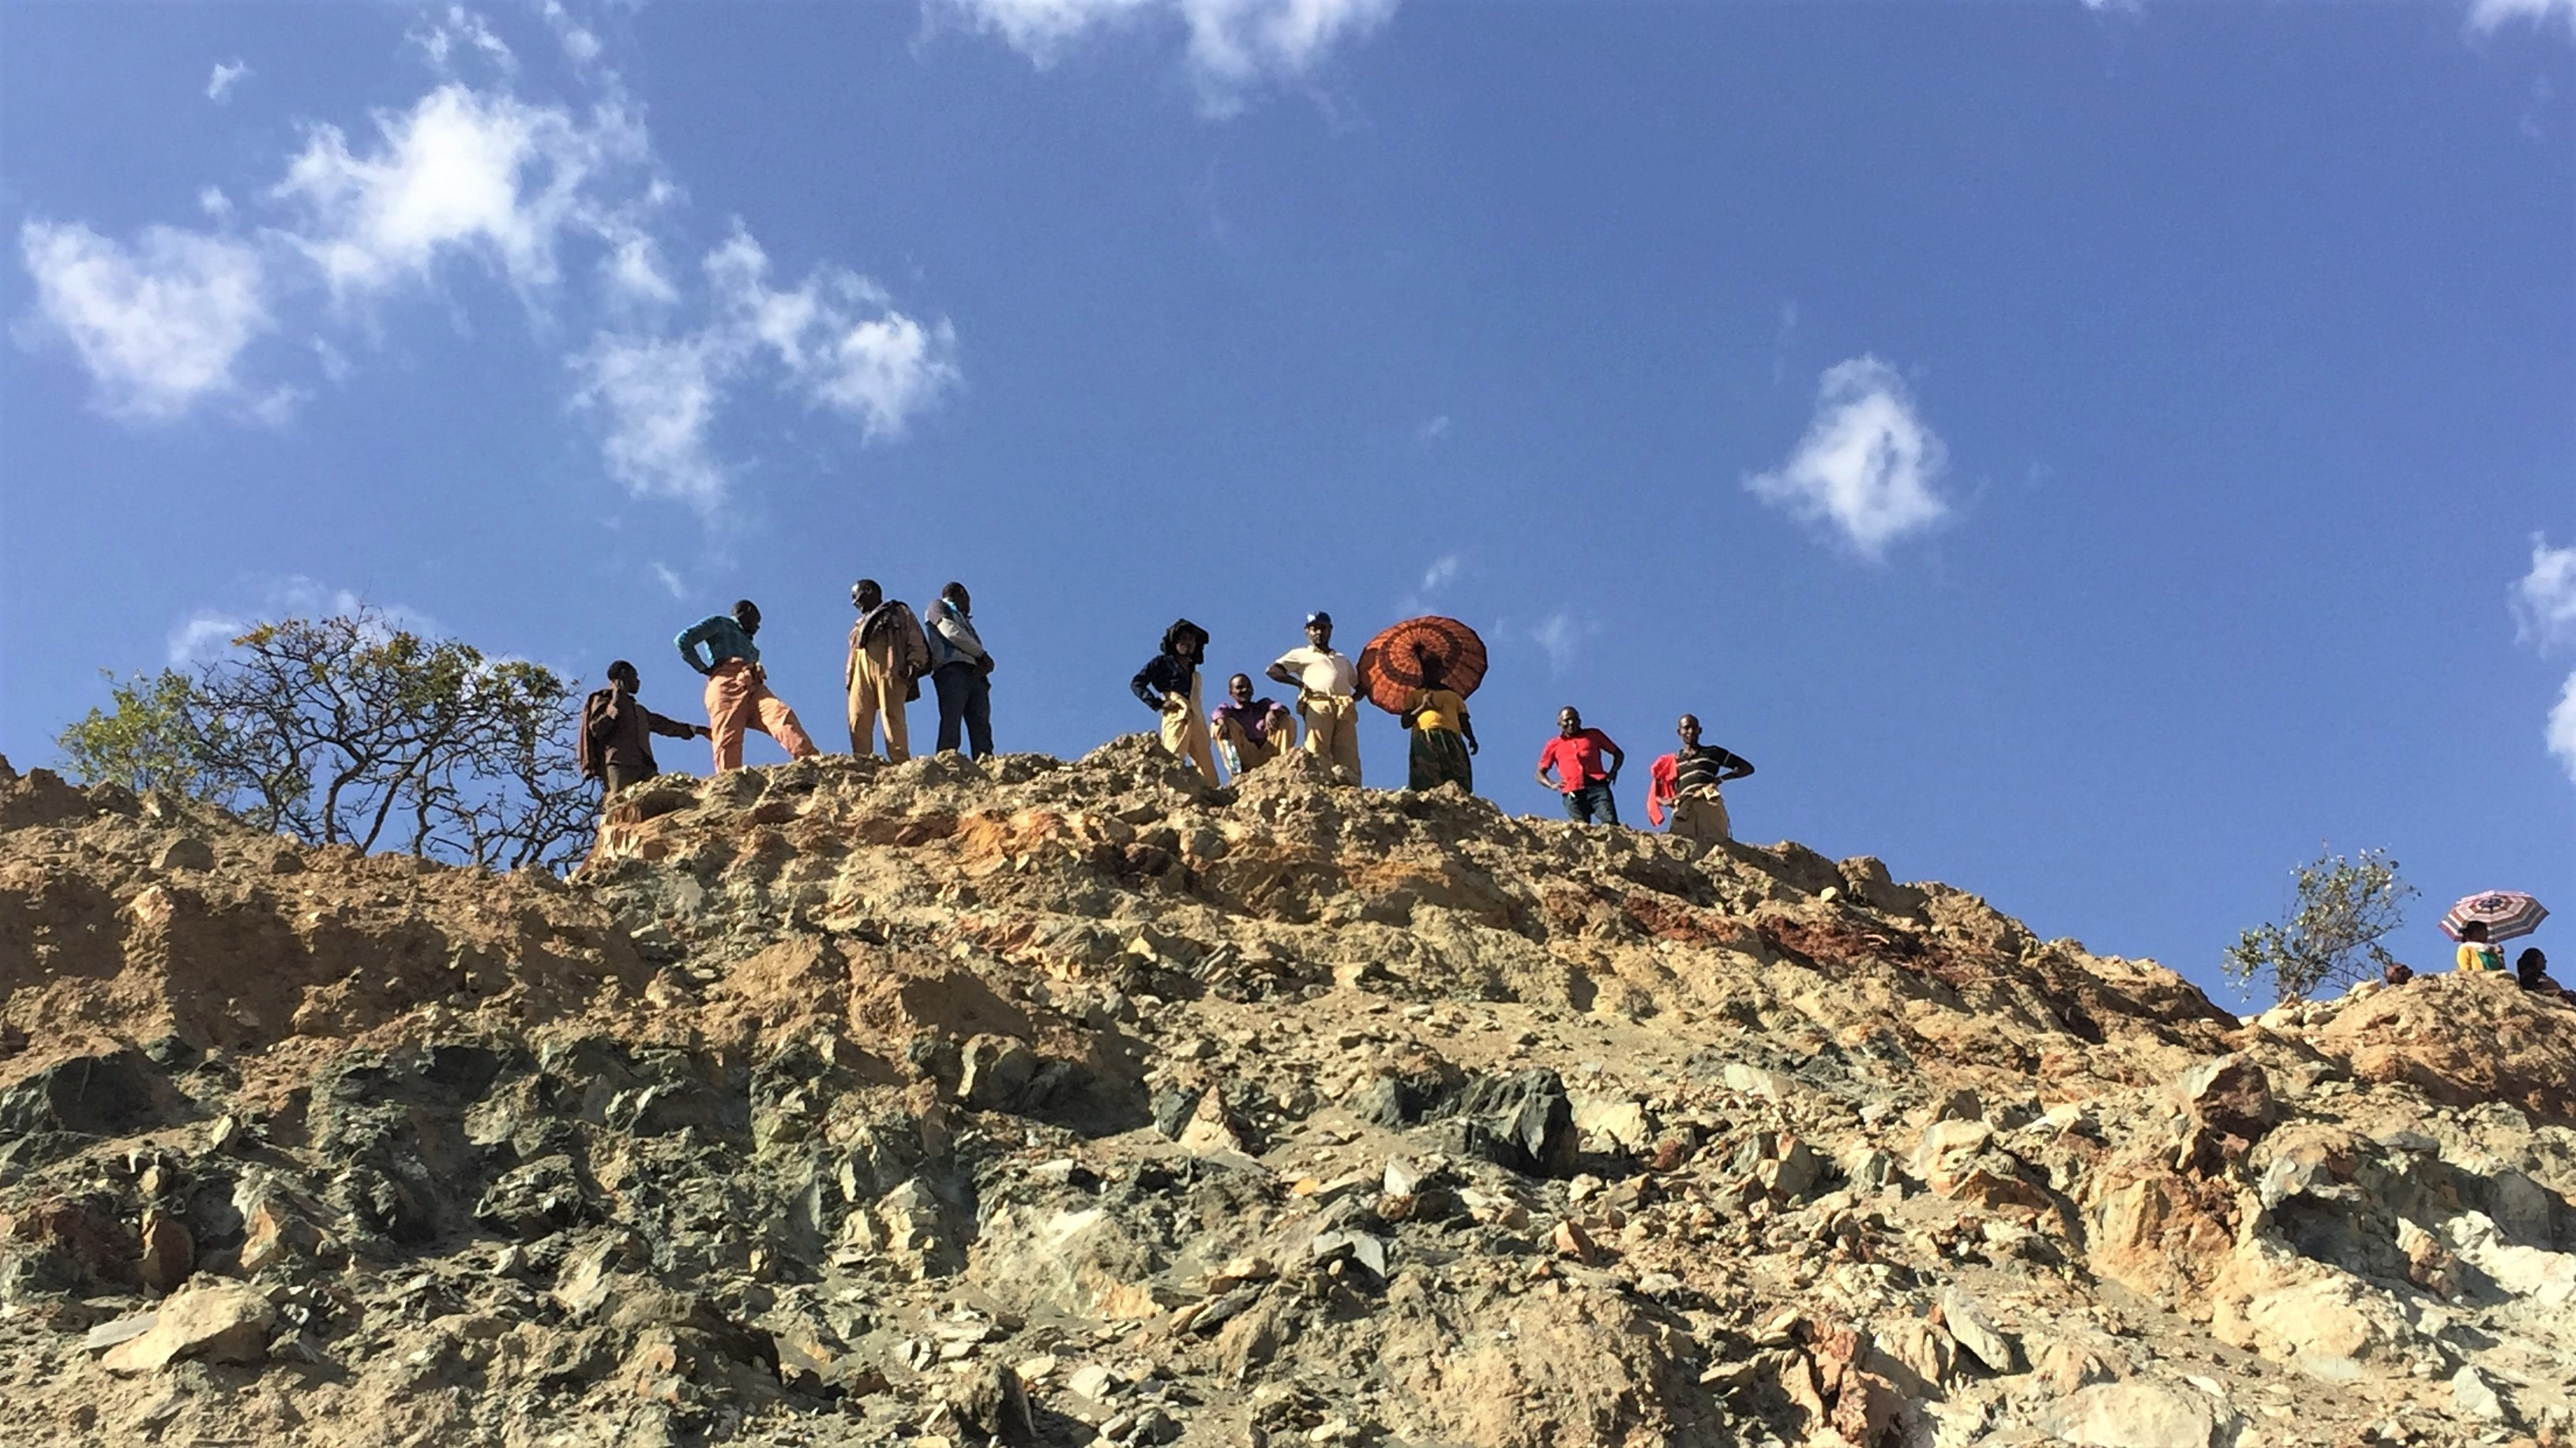 Miners in Shakiso looking up from the pit, 2018. © Estelle Levin-Nally for Levin Sources